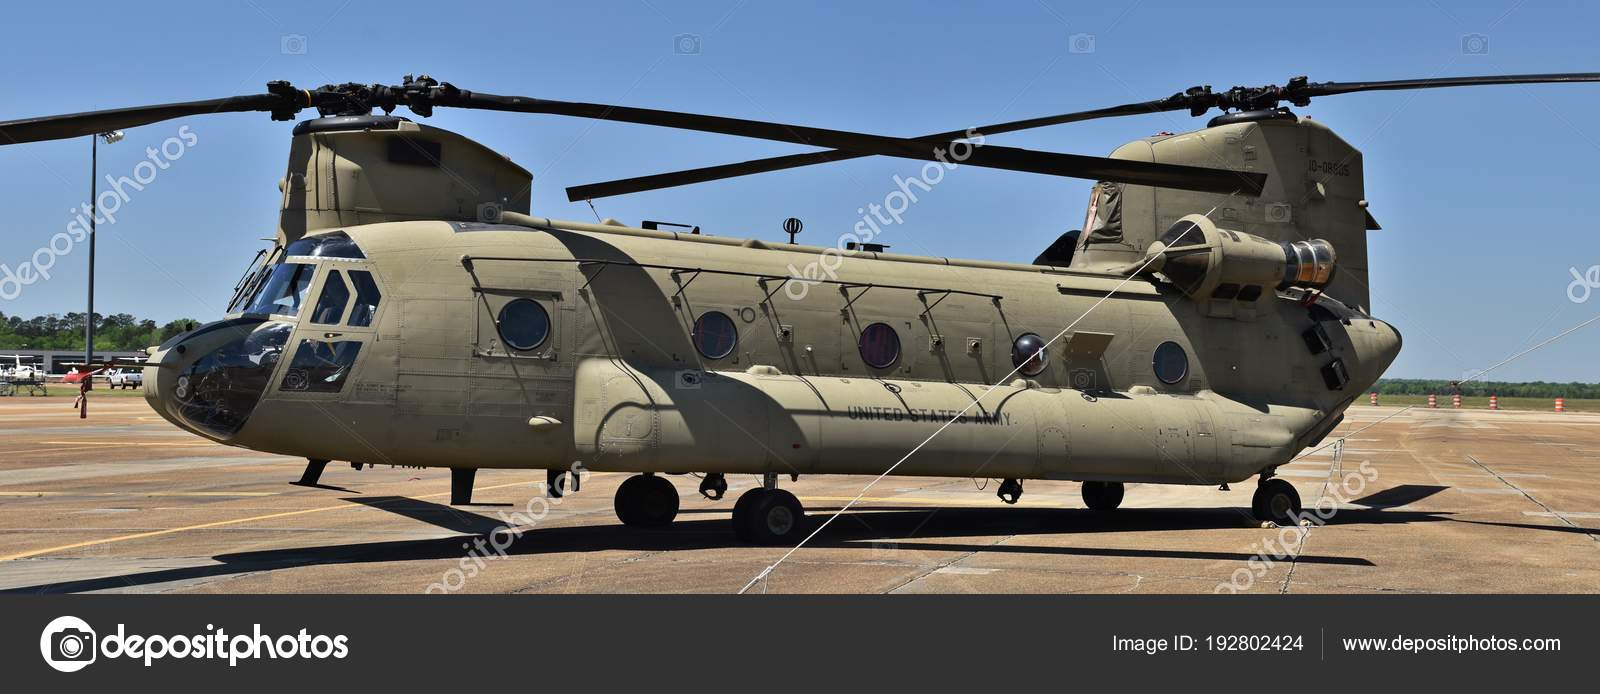 Elicottero Ch : Columbus afb mississippi aprile verde army chinook elicottero